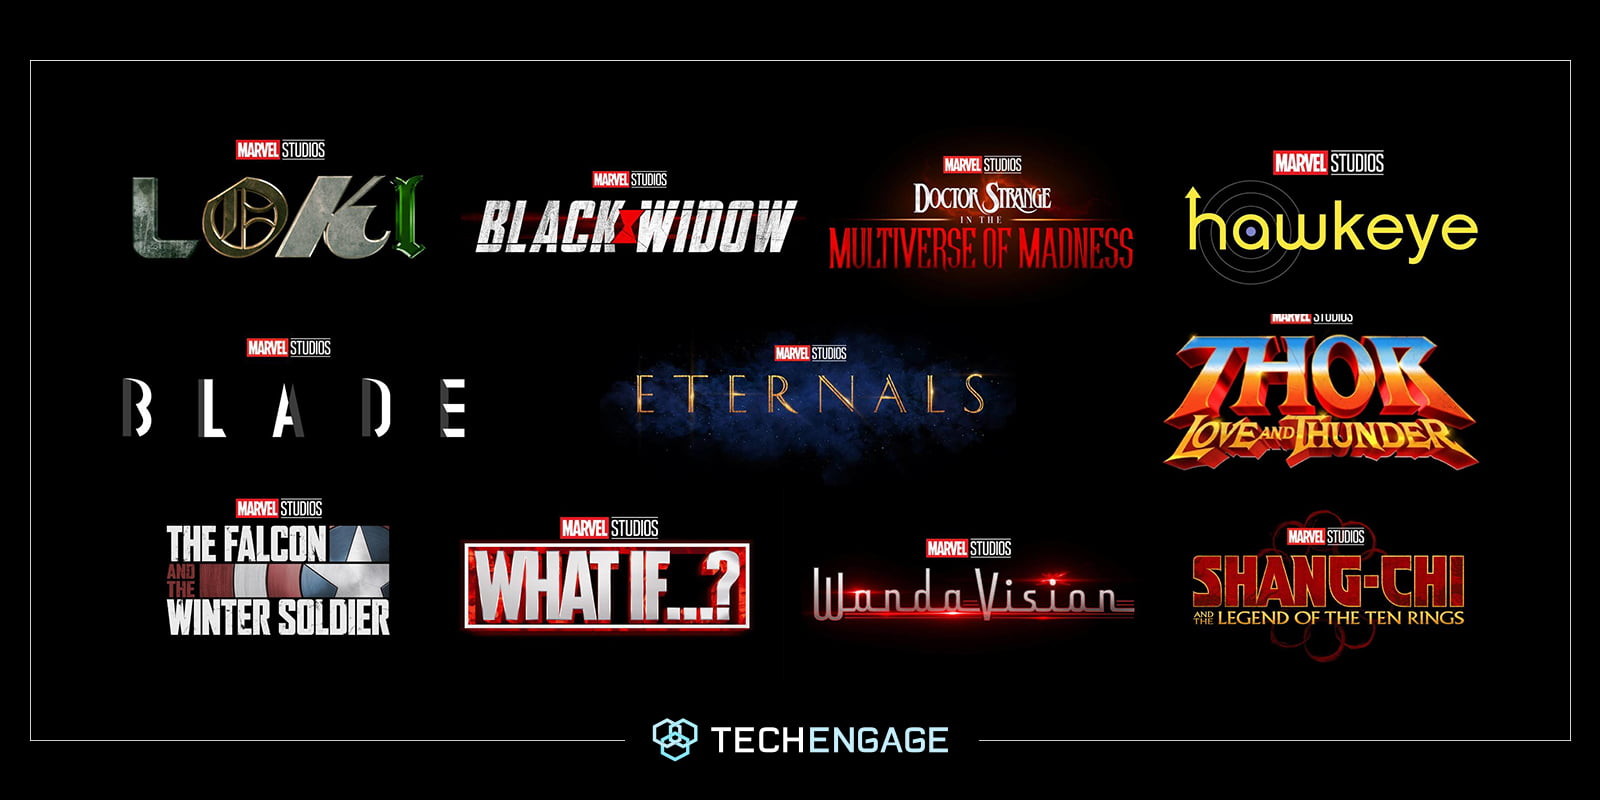 Upcoming Marvel projects